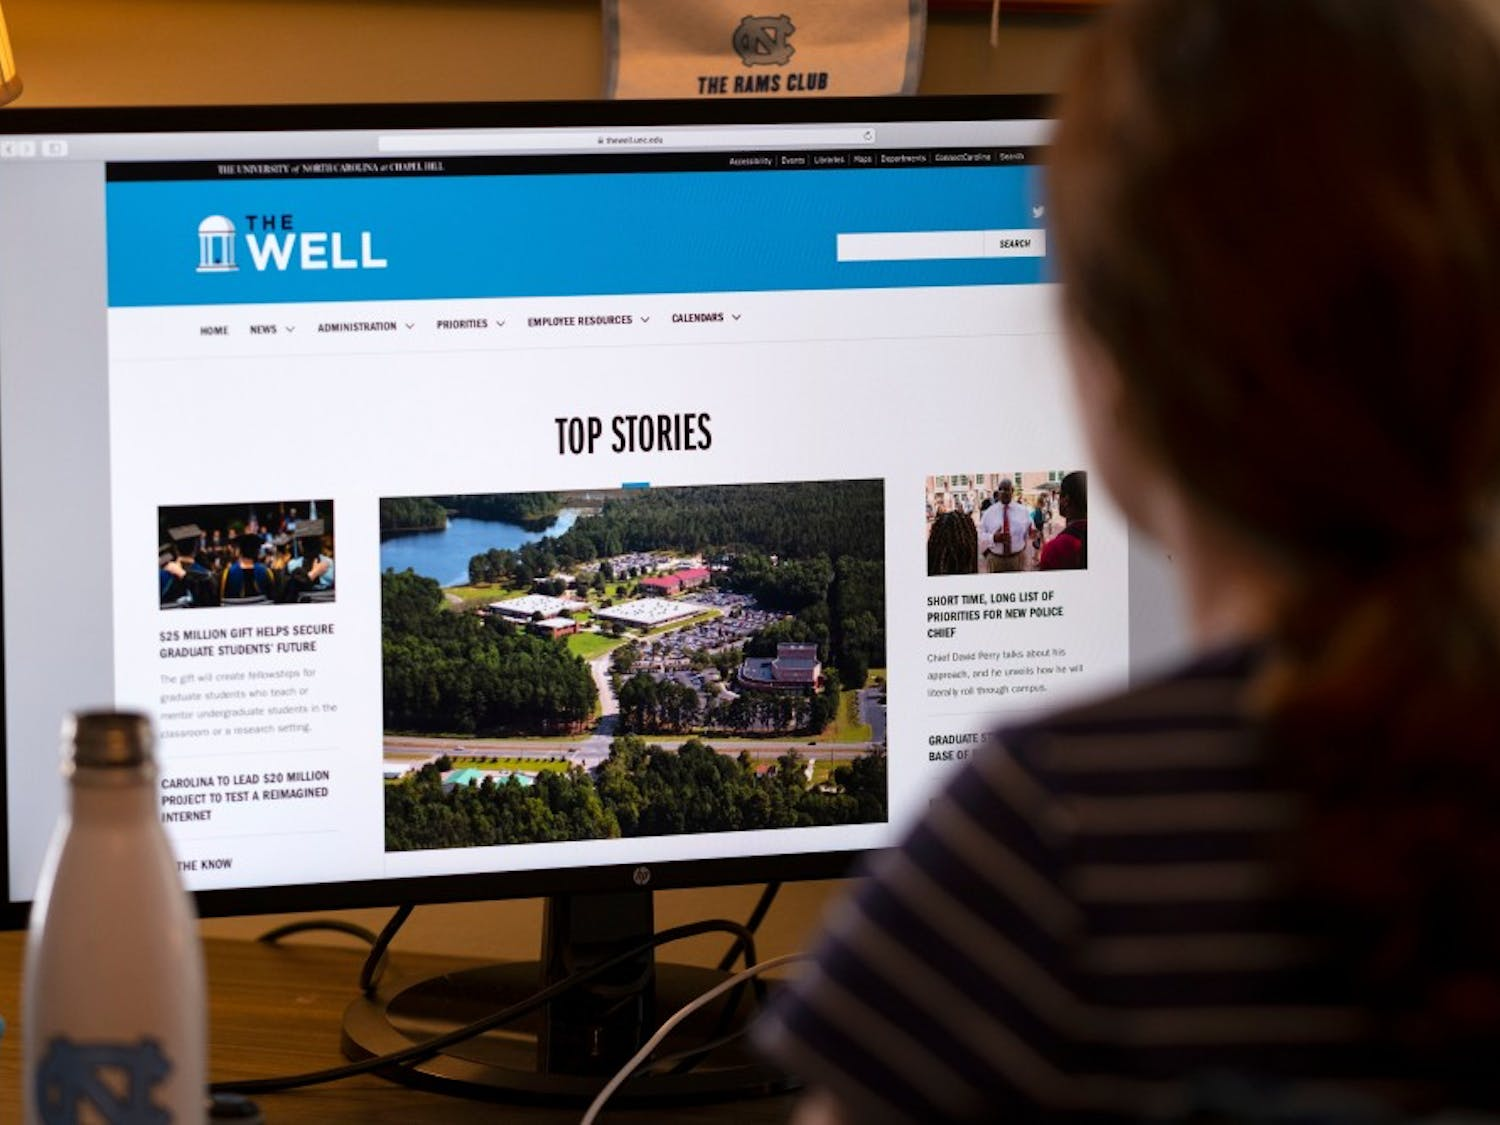 Promotional image for The Well, courtesy of University Communications.